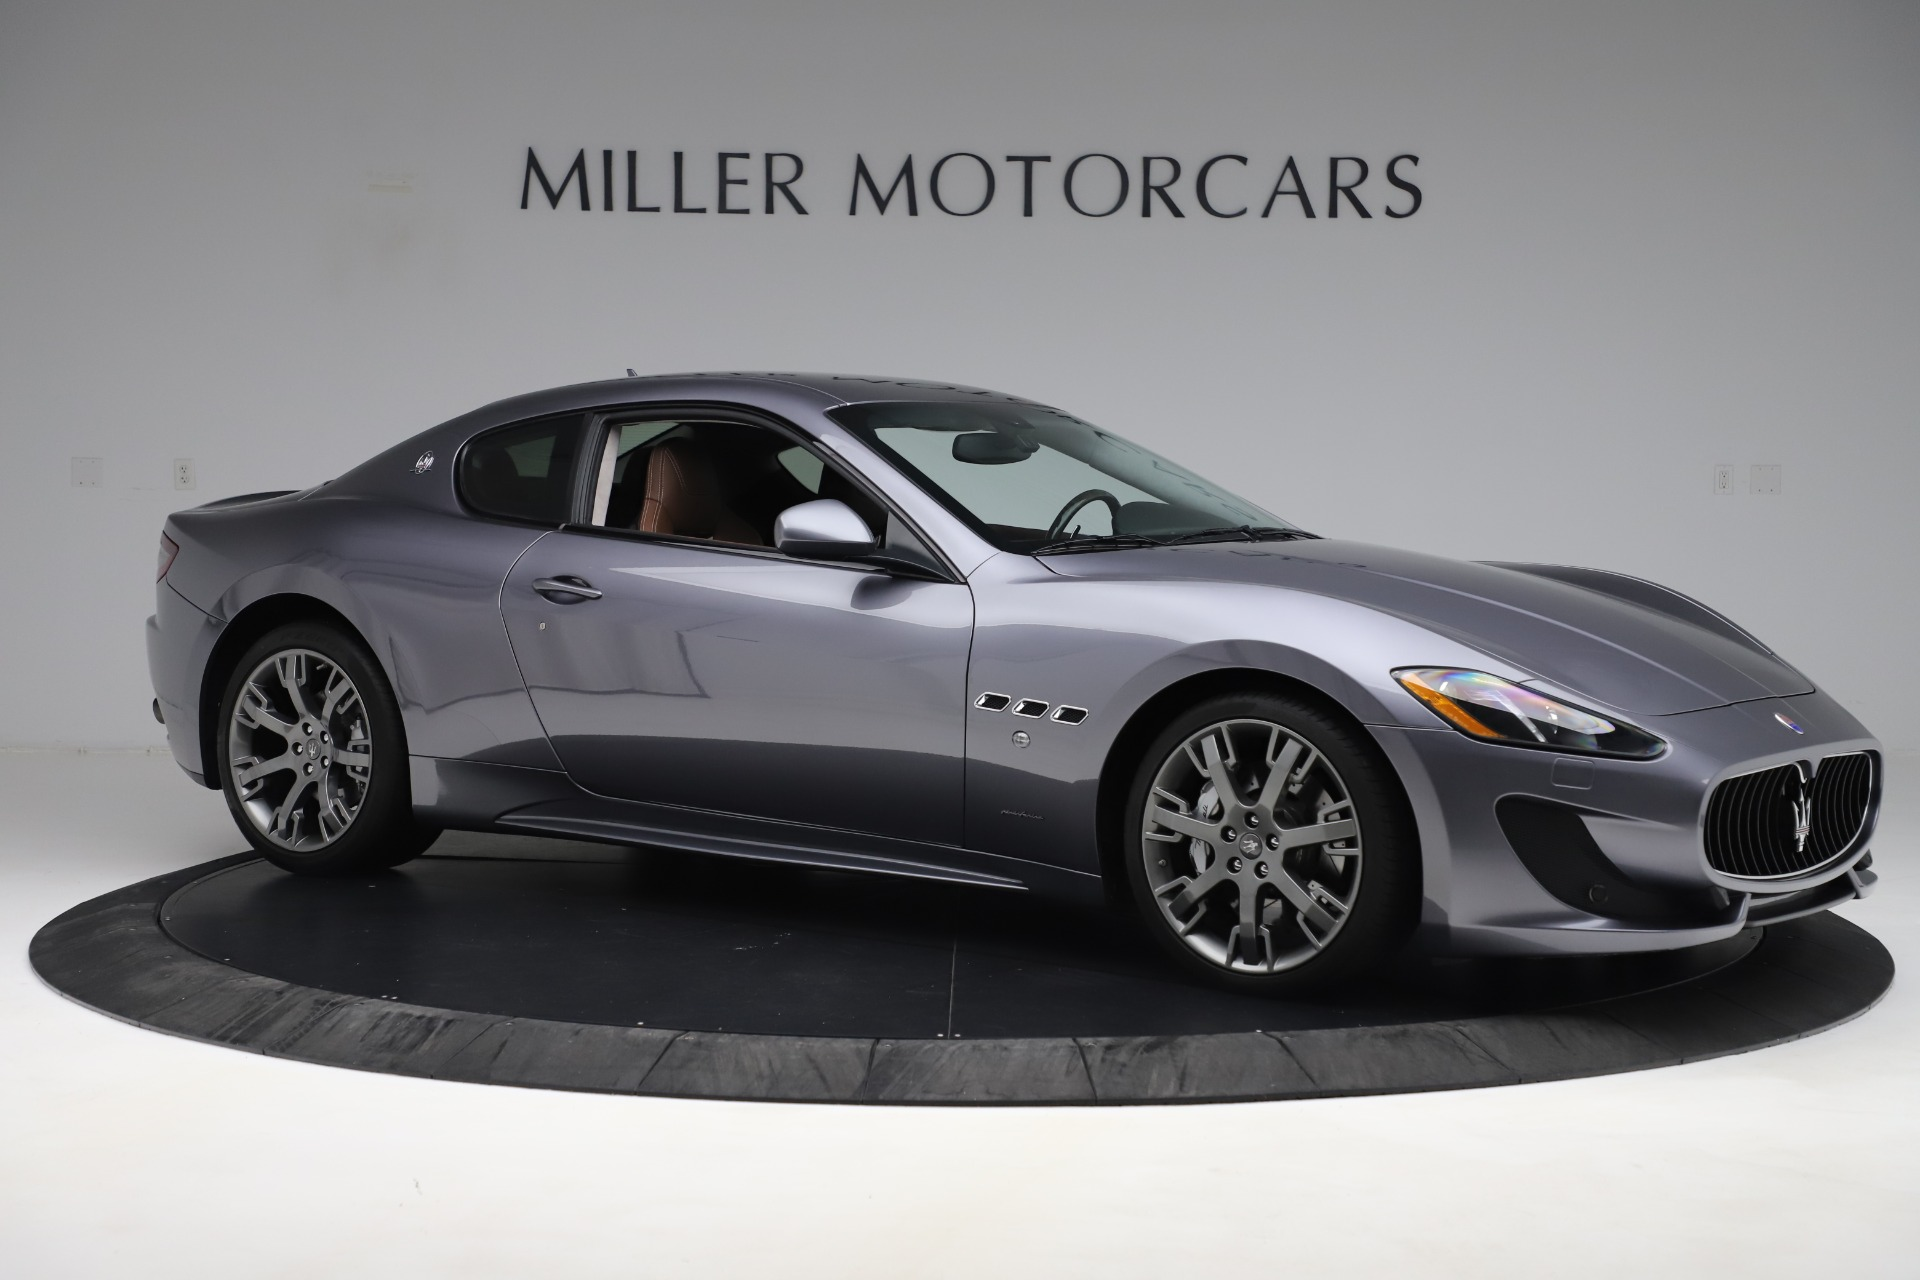 New 2016 Maserati GranTurismo Sport- TEST DRIVE SPECIAL For Sale In Greenwich, CT 166_p10